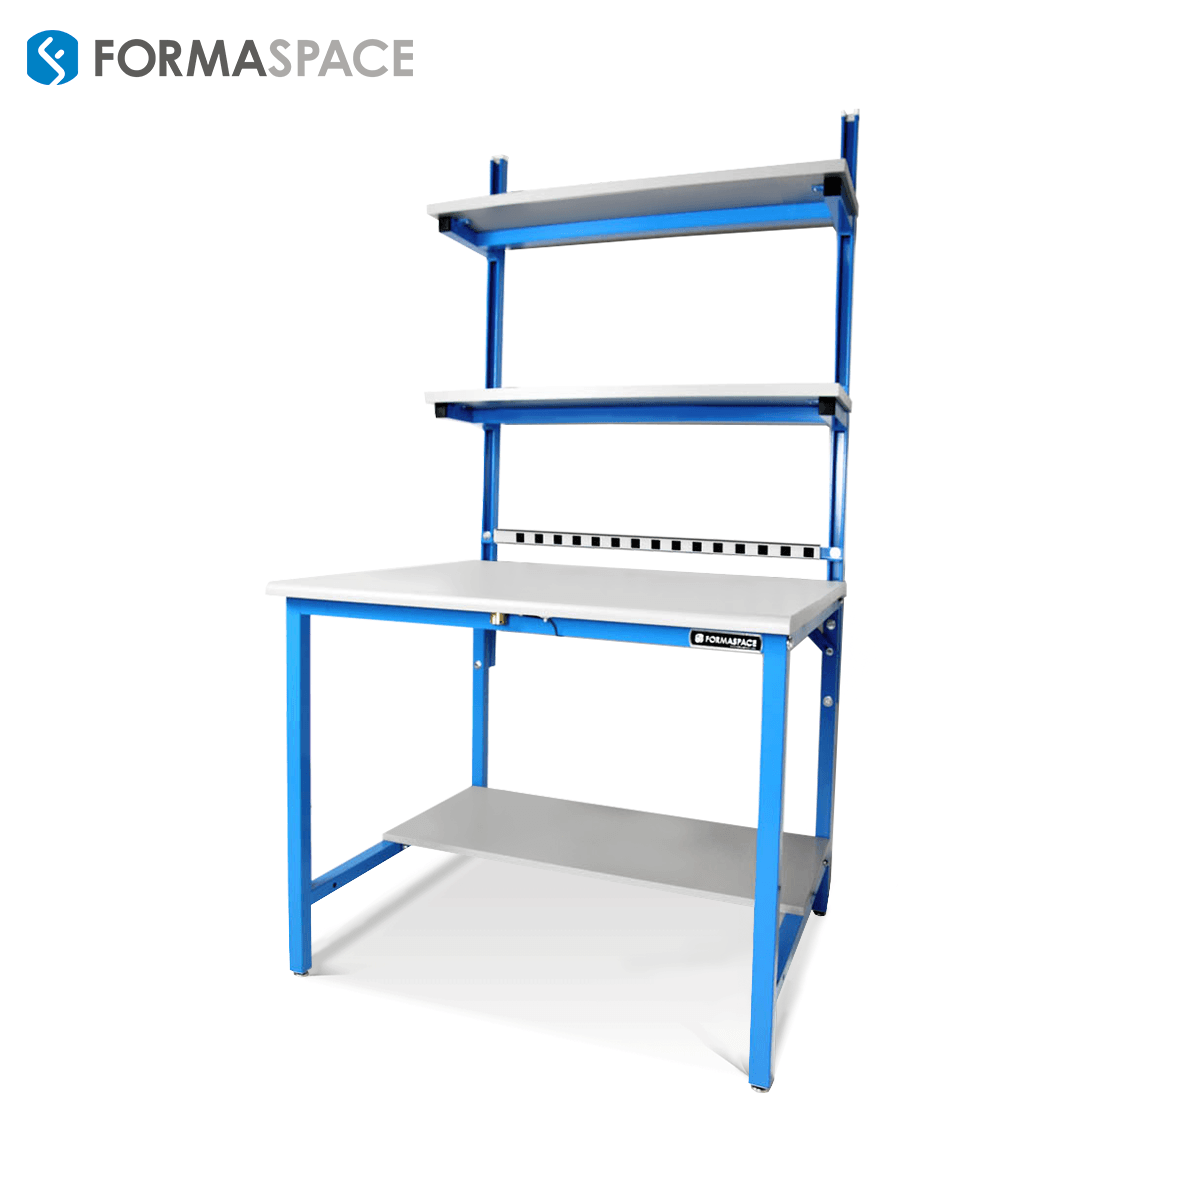 Awesome Benchmarx With Esd Kit Formaspace This Workbench Caraccident5 Cool Chair Designs And Ideas Caraccident5Info